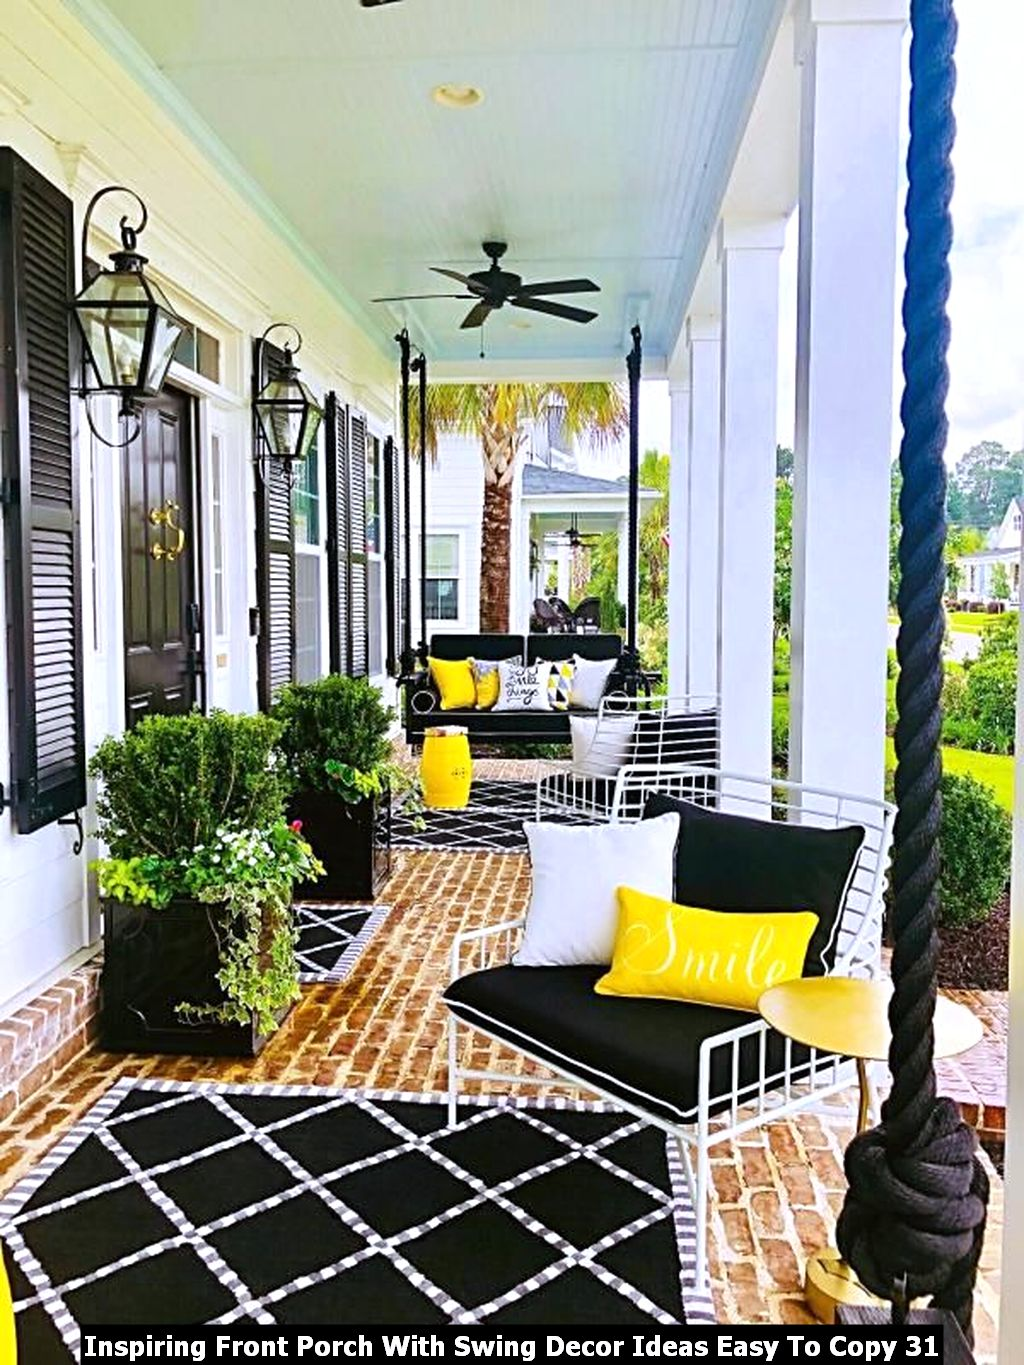 Inspiring Front Porch With Swing Decor Ideas Easy To Copy 31